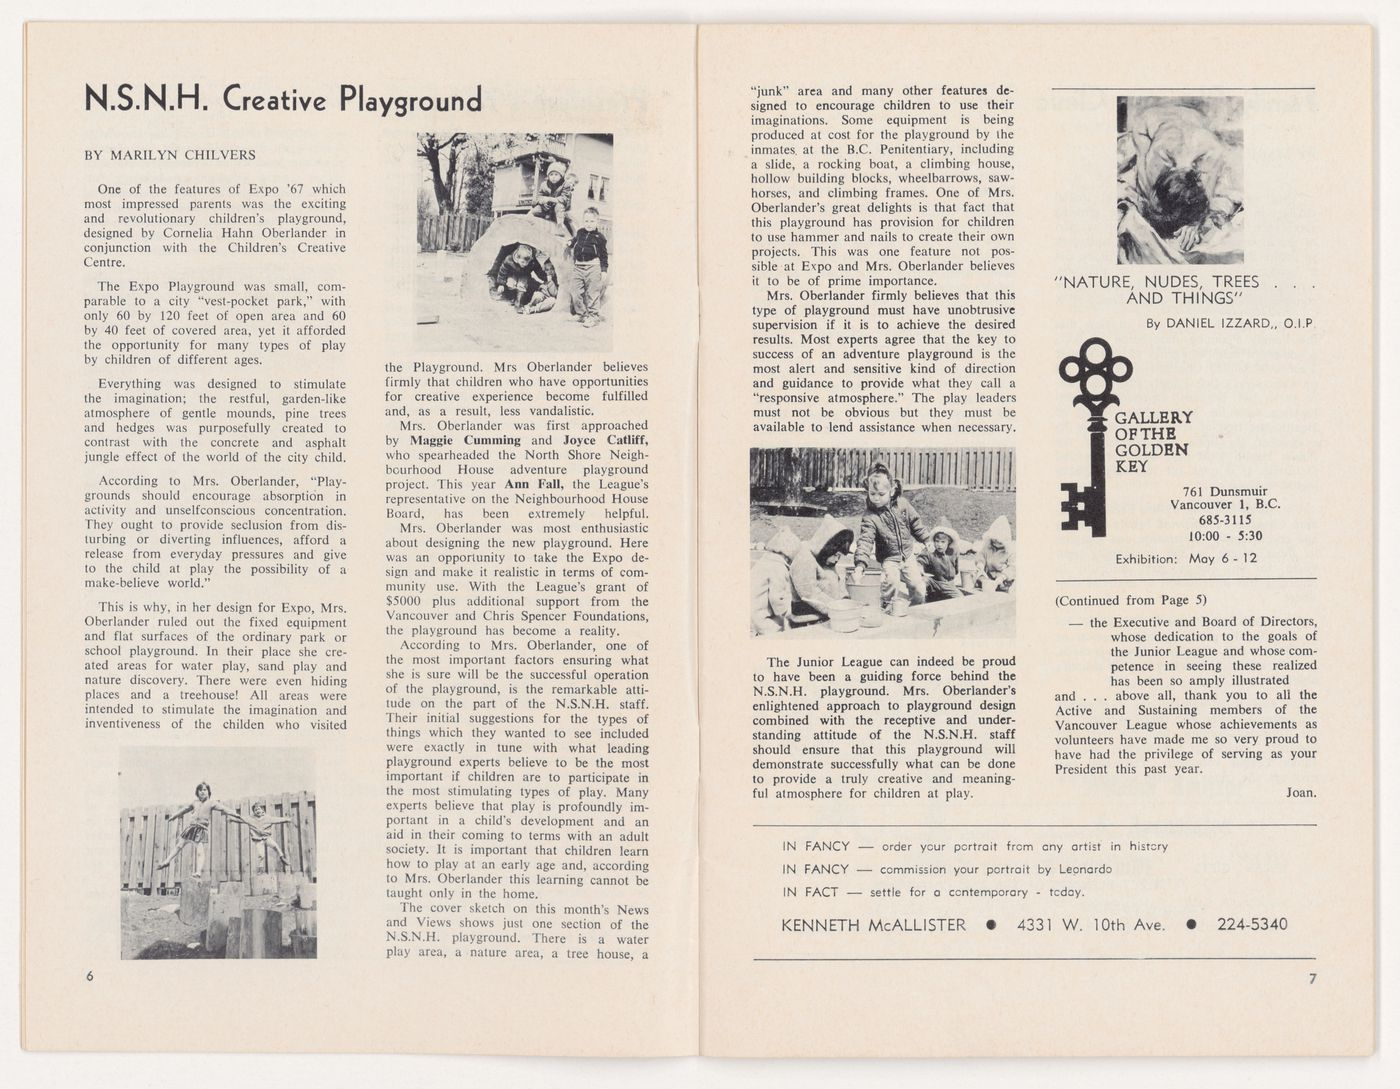 Periodical of the Junior League of Vancouver with article for Children's Creative Centre Playground, Canadian Federal Pavilion, Expo '67, Montréal, Québec